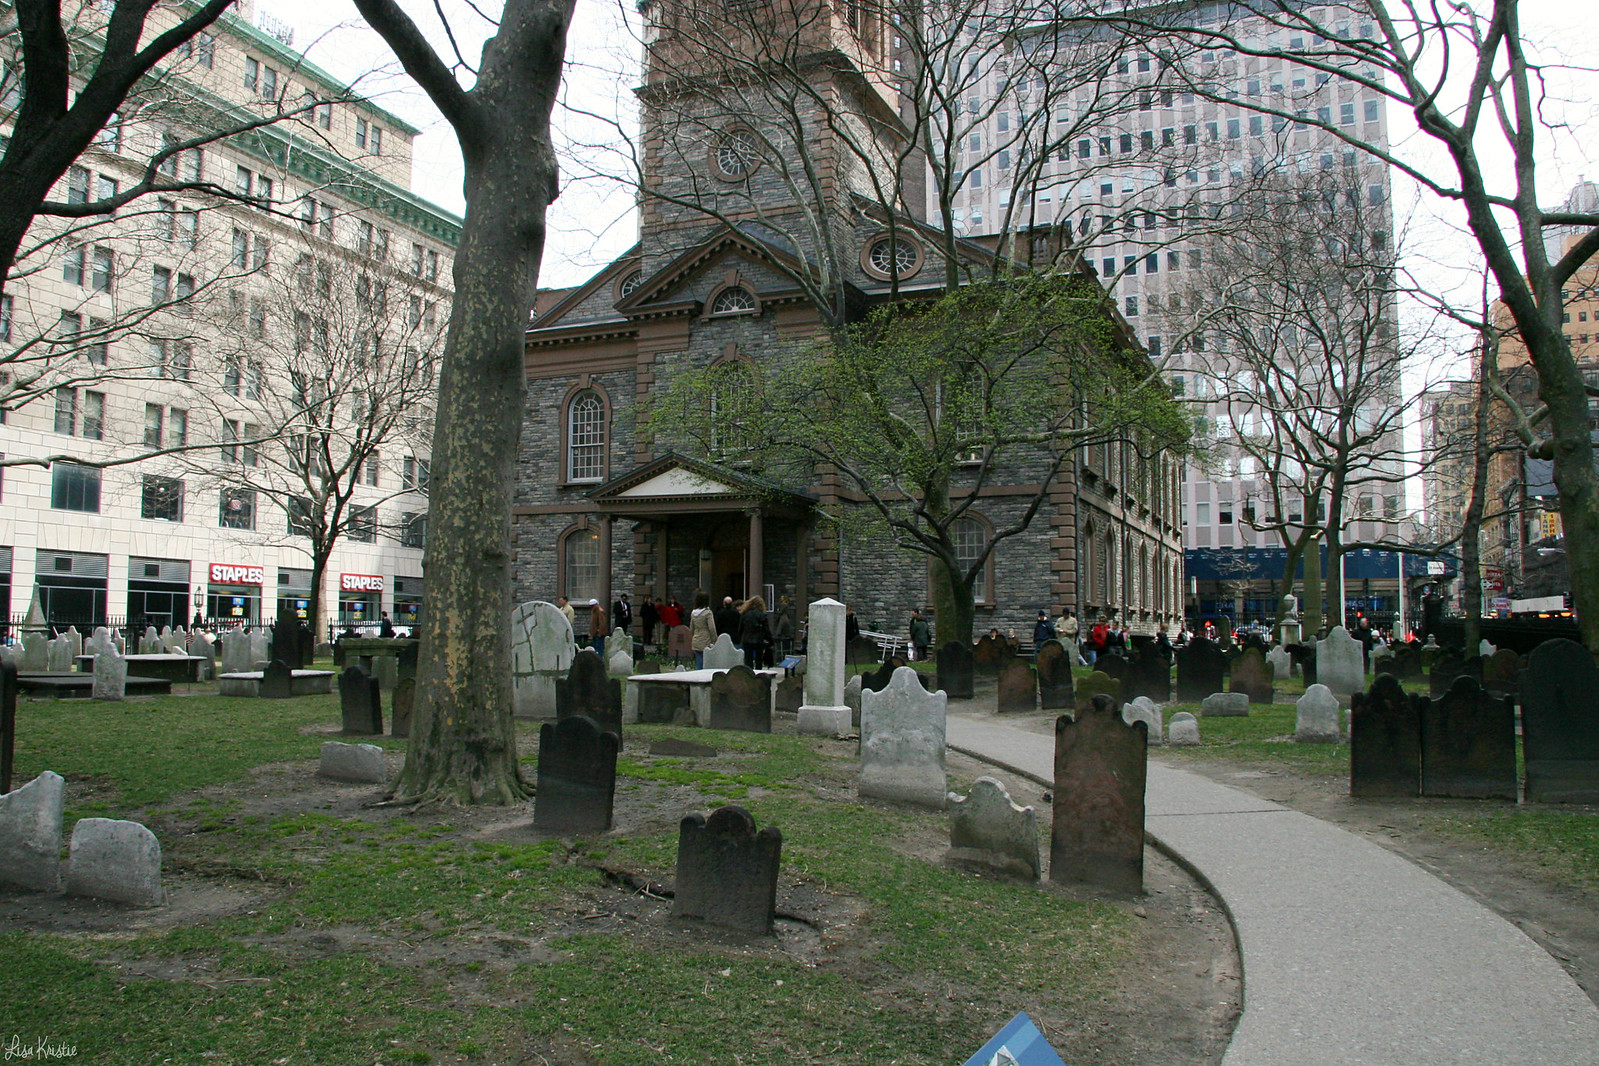 Saint Paul's Chapel church lower manhattan new york city back entry facade graveyard cemetery churchyard graves headstones old spring april 2007